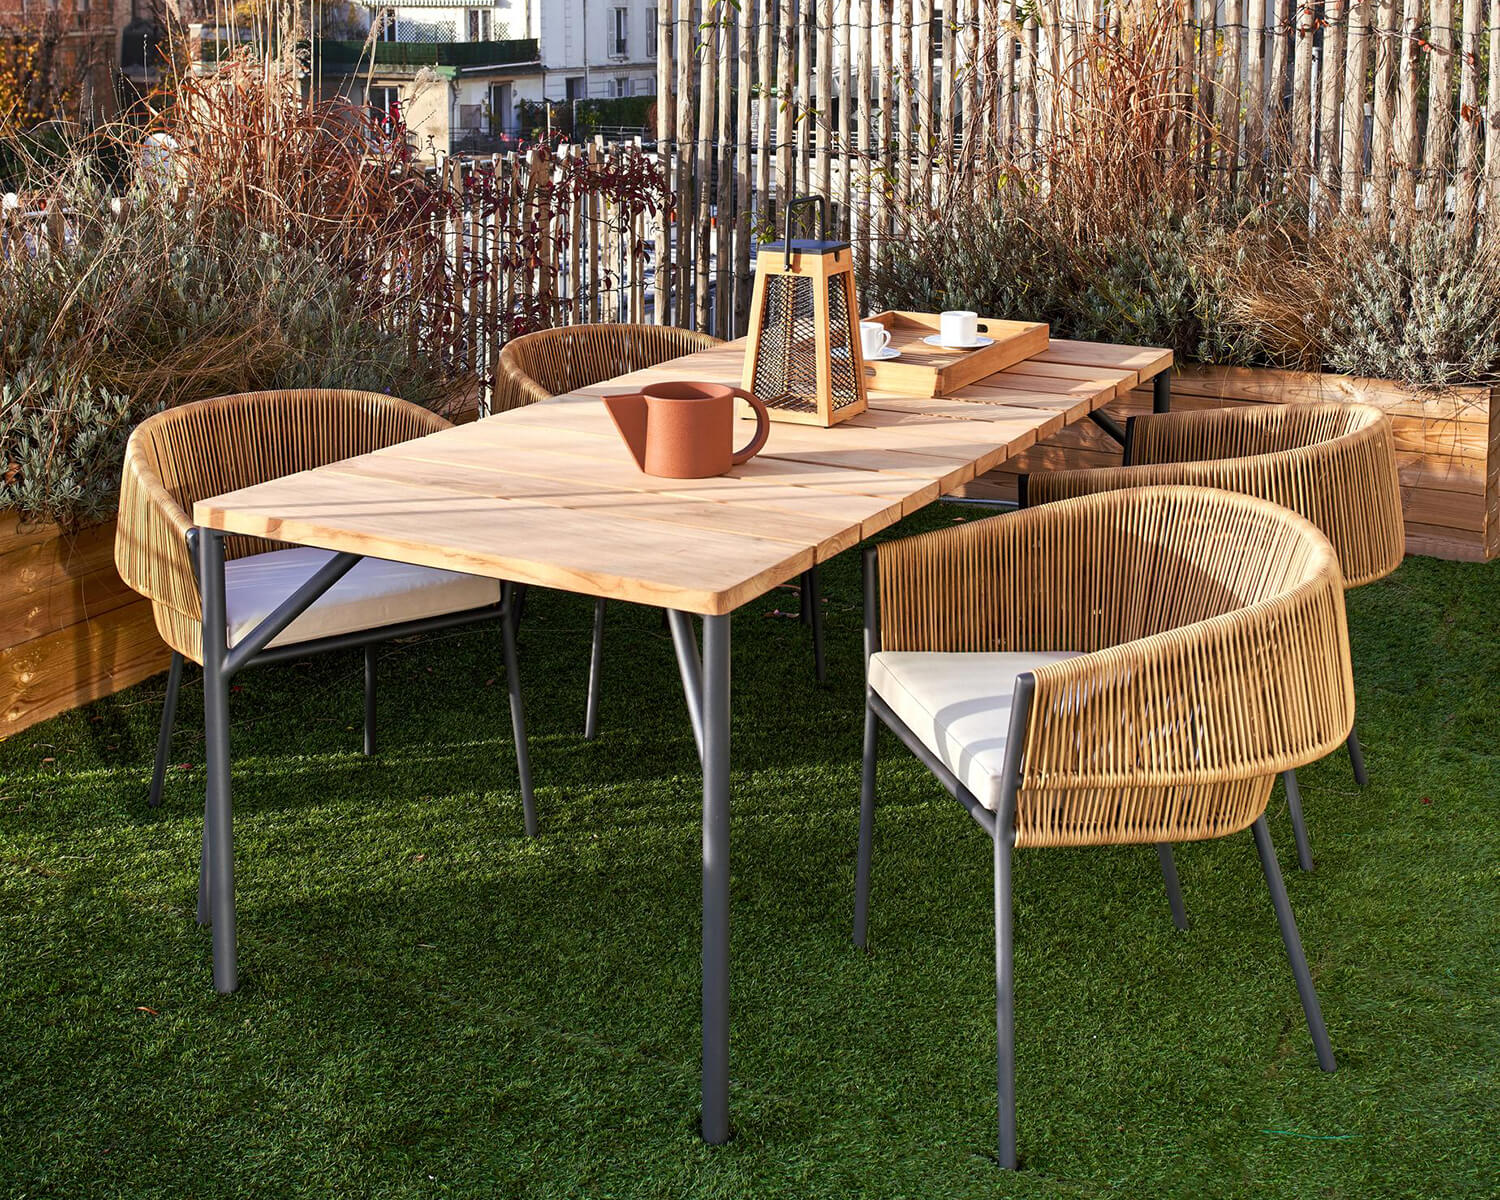 4 Lapel chairs around Lapel dining table on grass